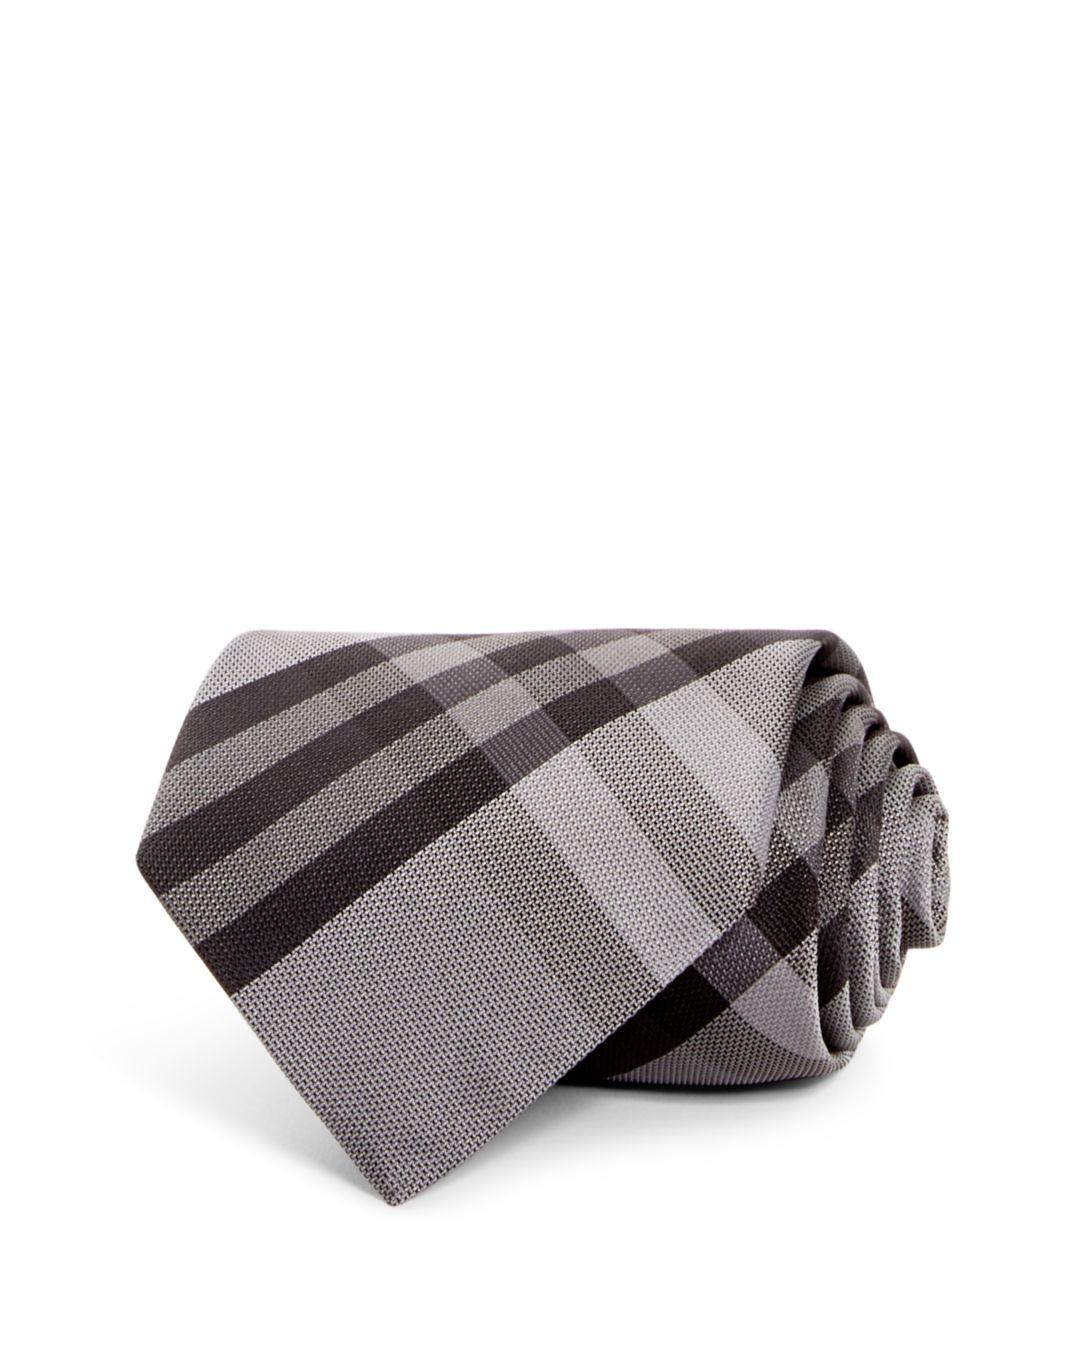 8976ea54cfb6 Burberry Clinton Check Classic Tie in Gray for Men - Lyst